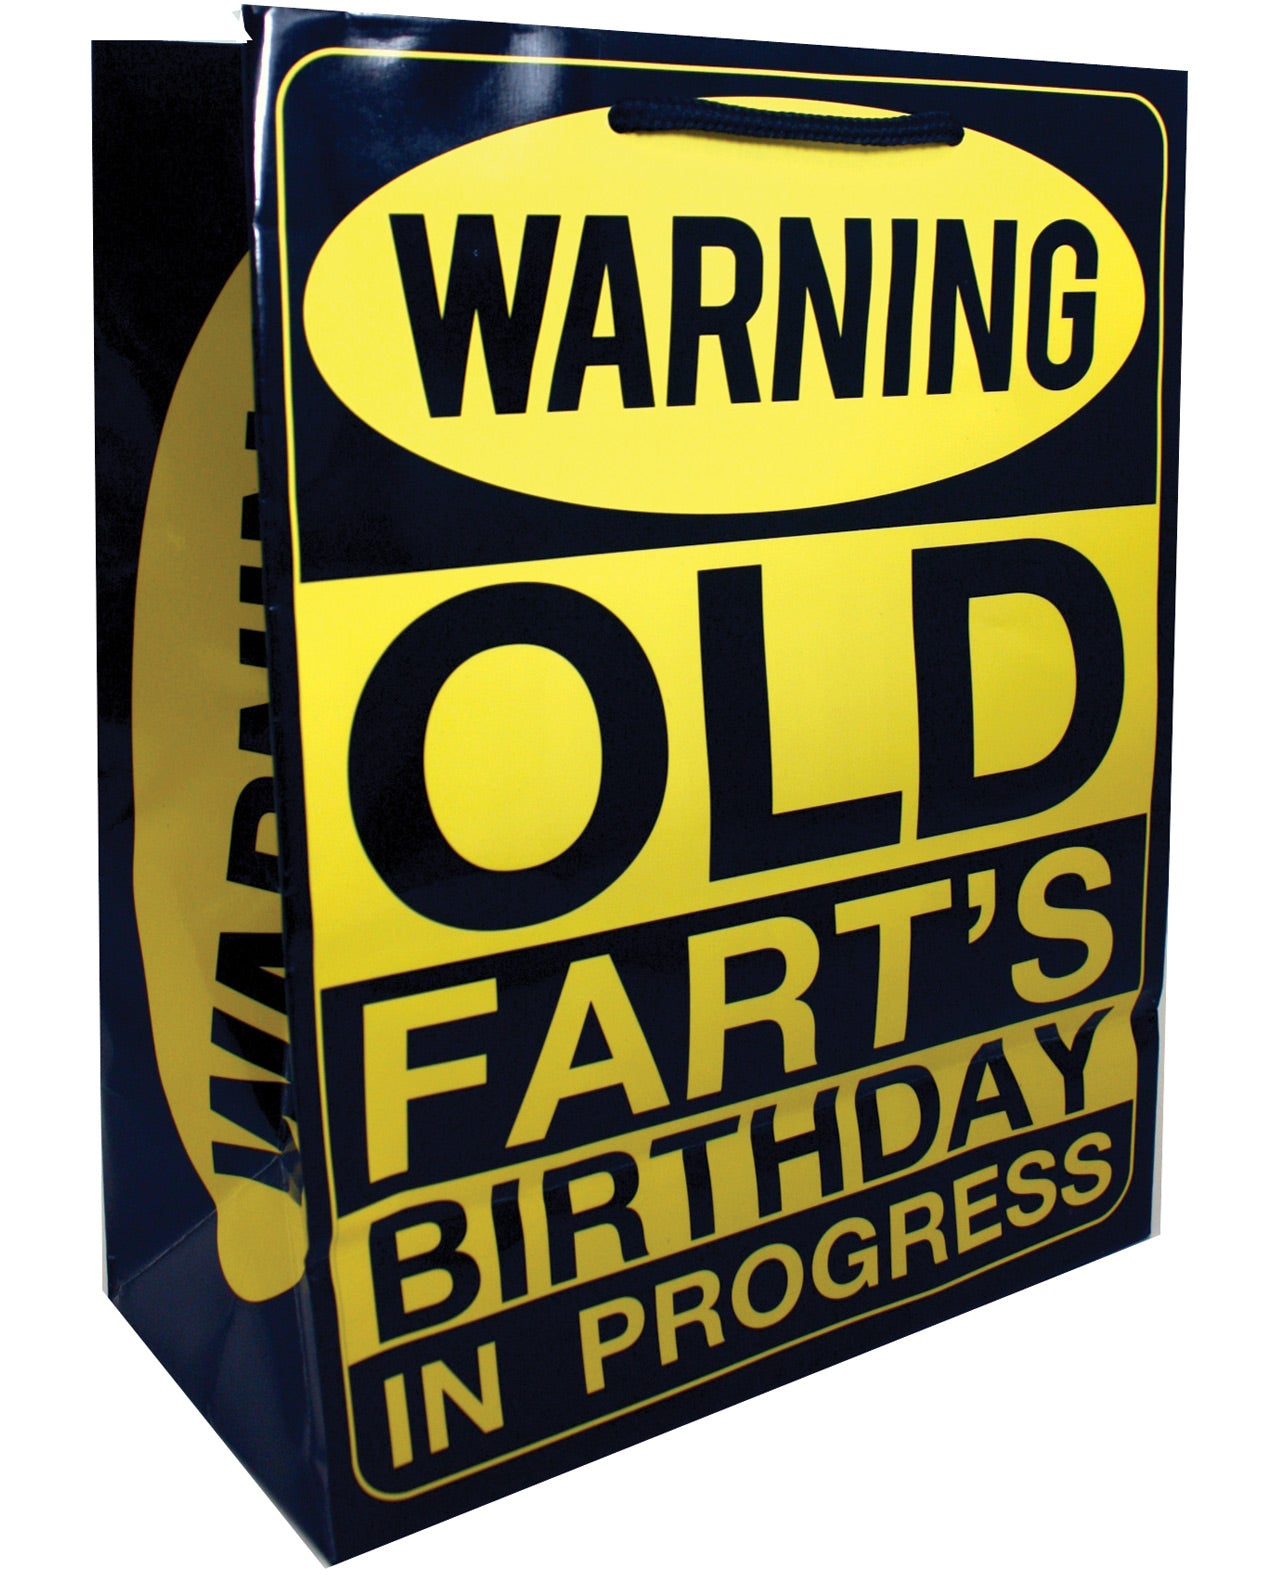 Warning Old Fart's Birthday in Progress Gift Bag